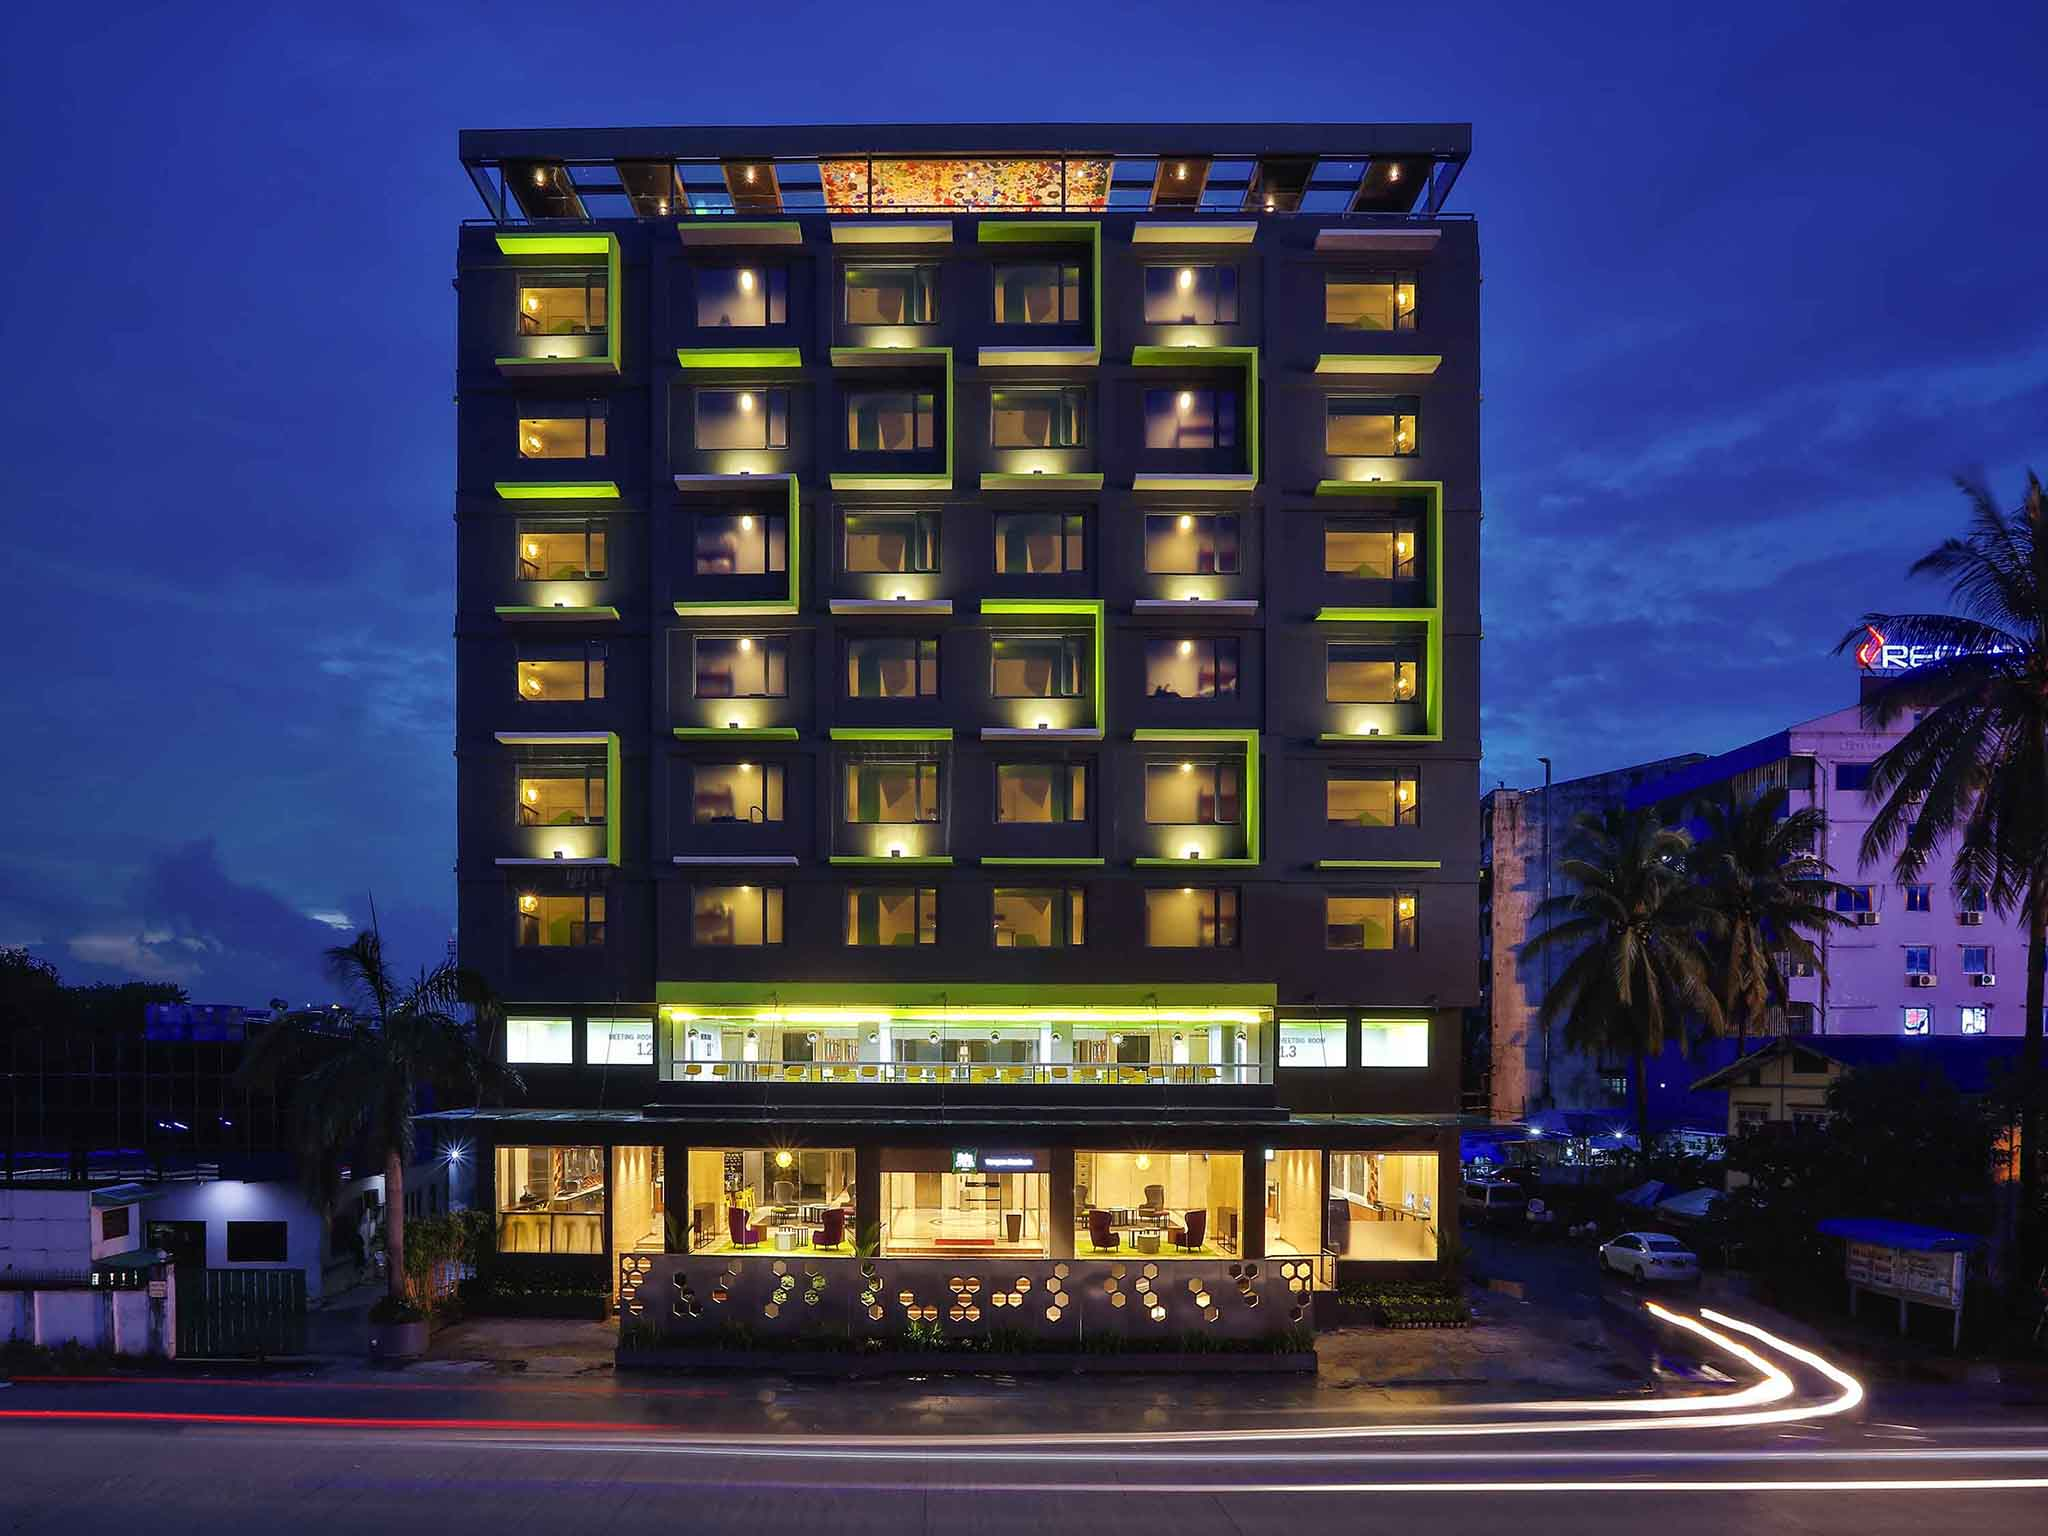 Ibis Styles Yangon Stadium Is A Hotel With Unique Cosy Yet Personalized Design It One Of The Hotels Under Management By Accor Group